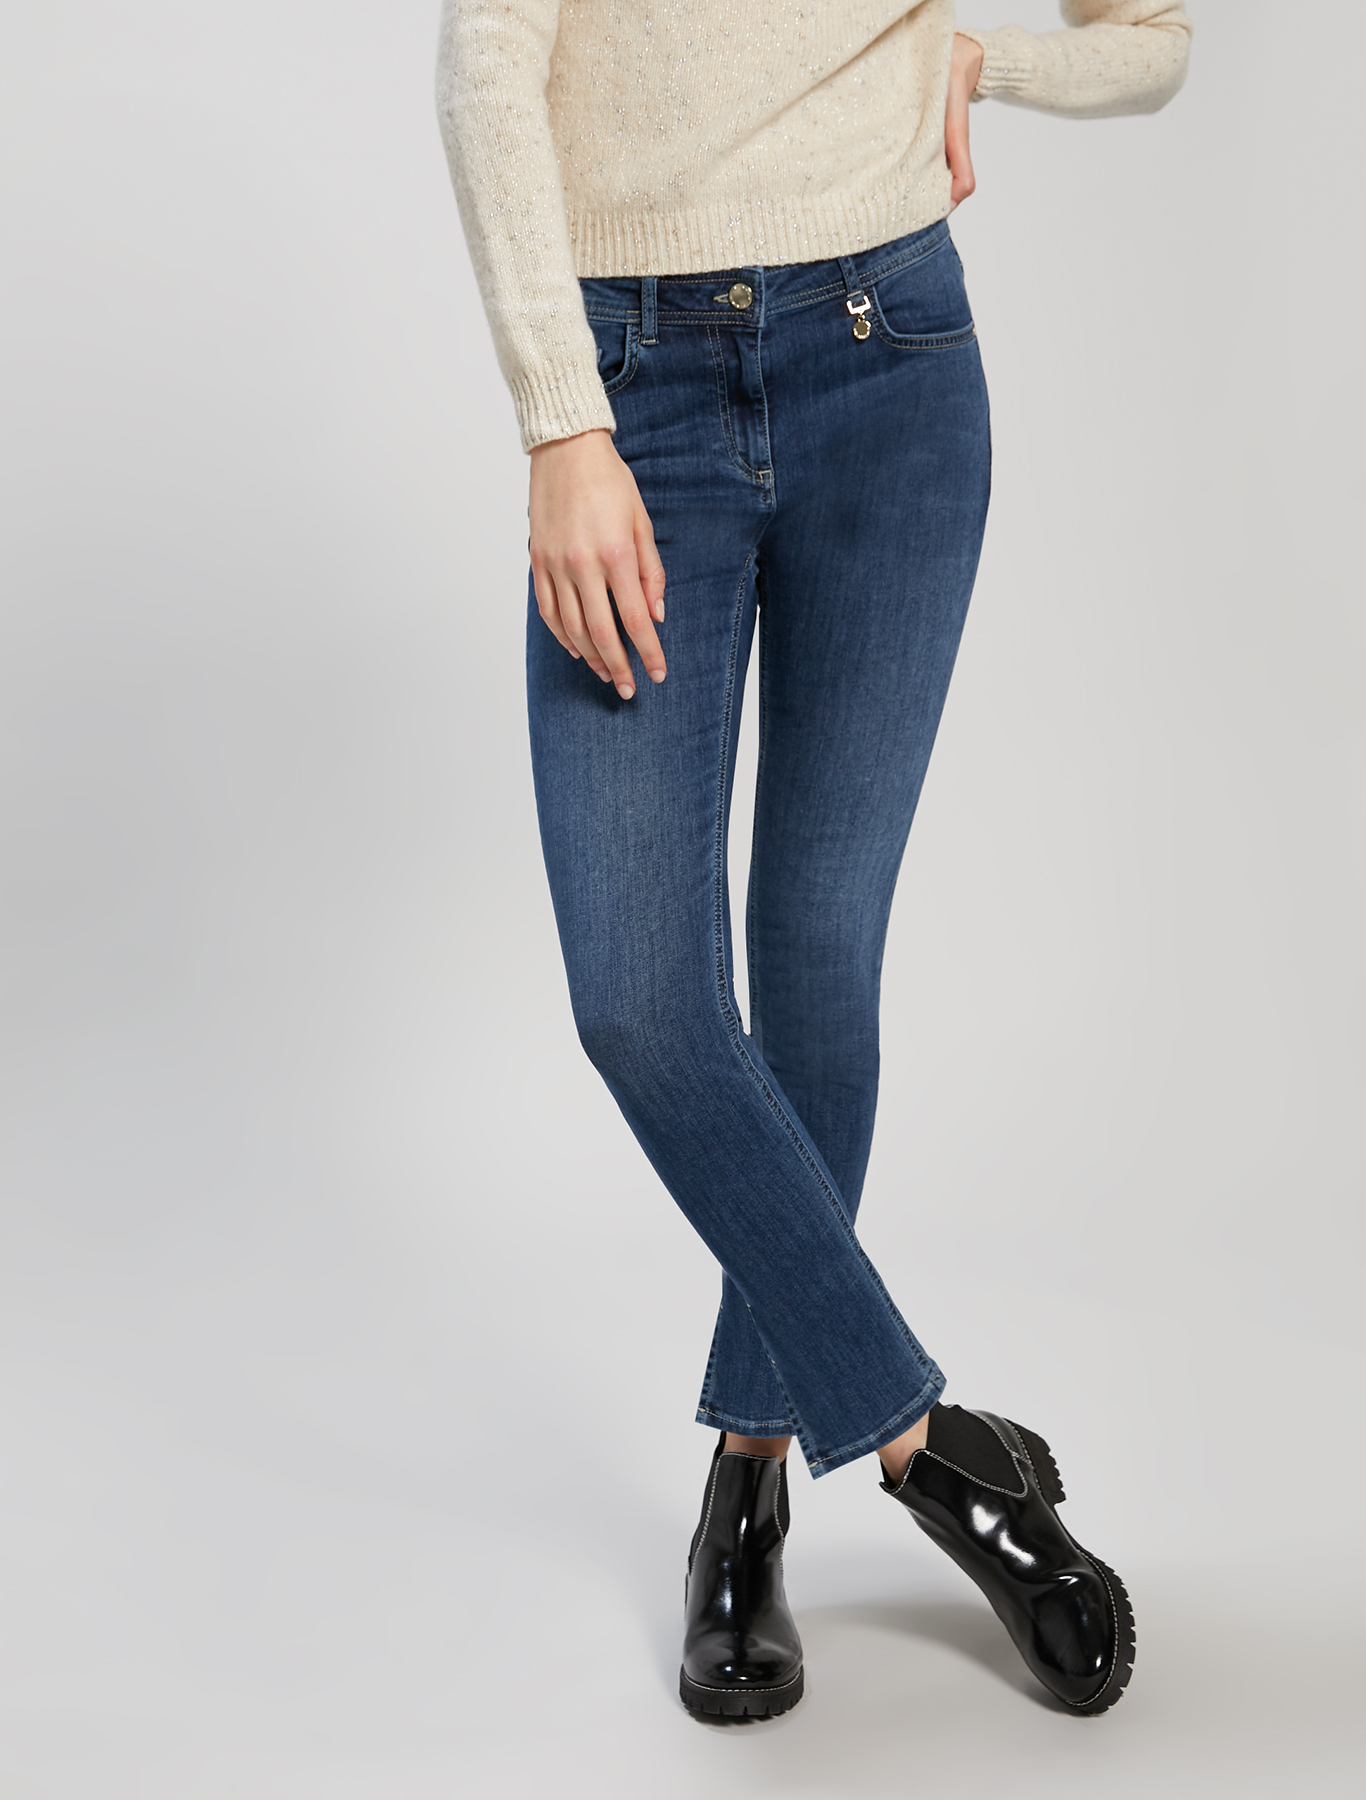 Super stretch skinny jeans - midnight blue - pennyblack